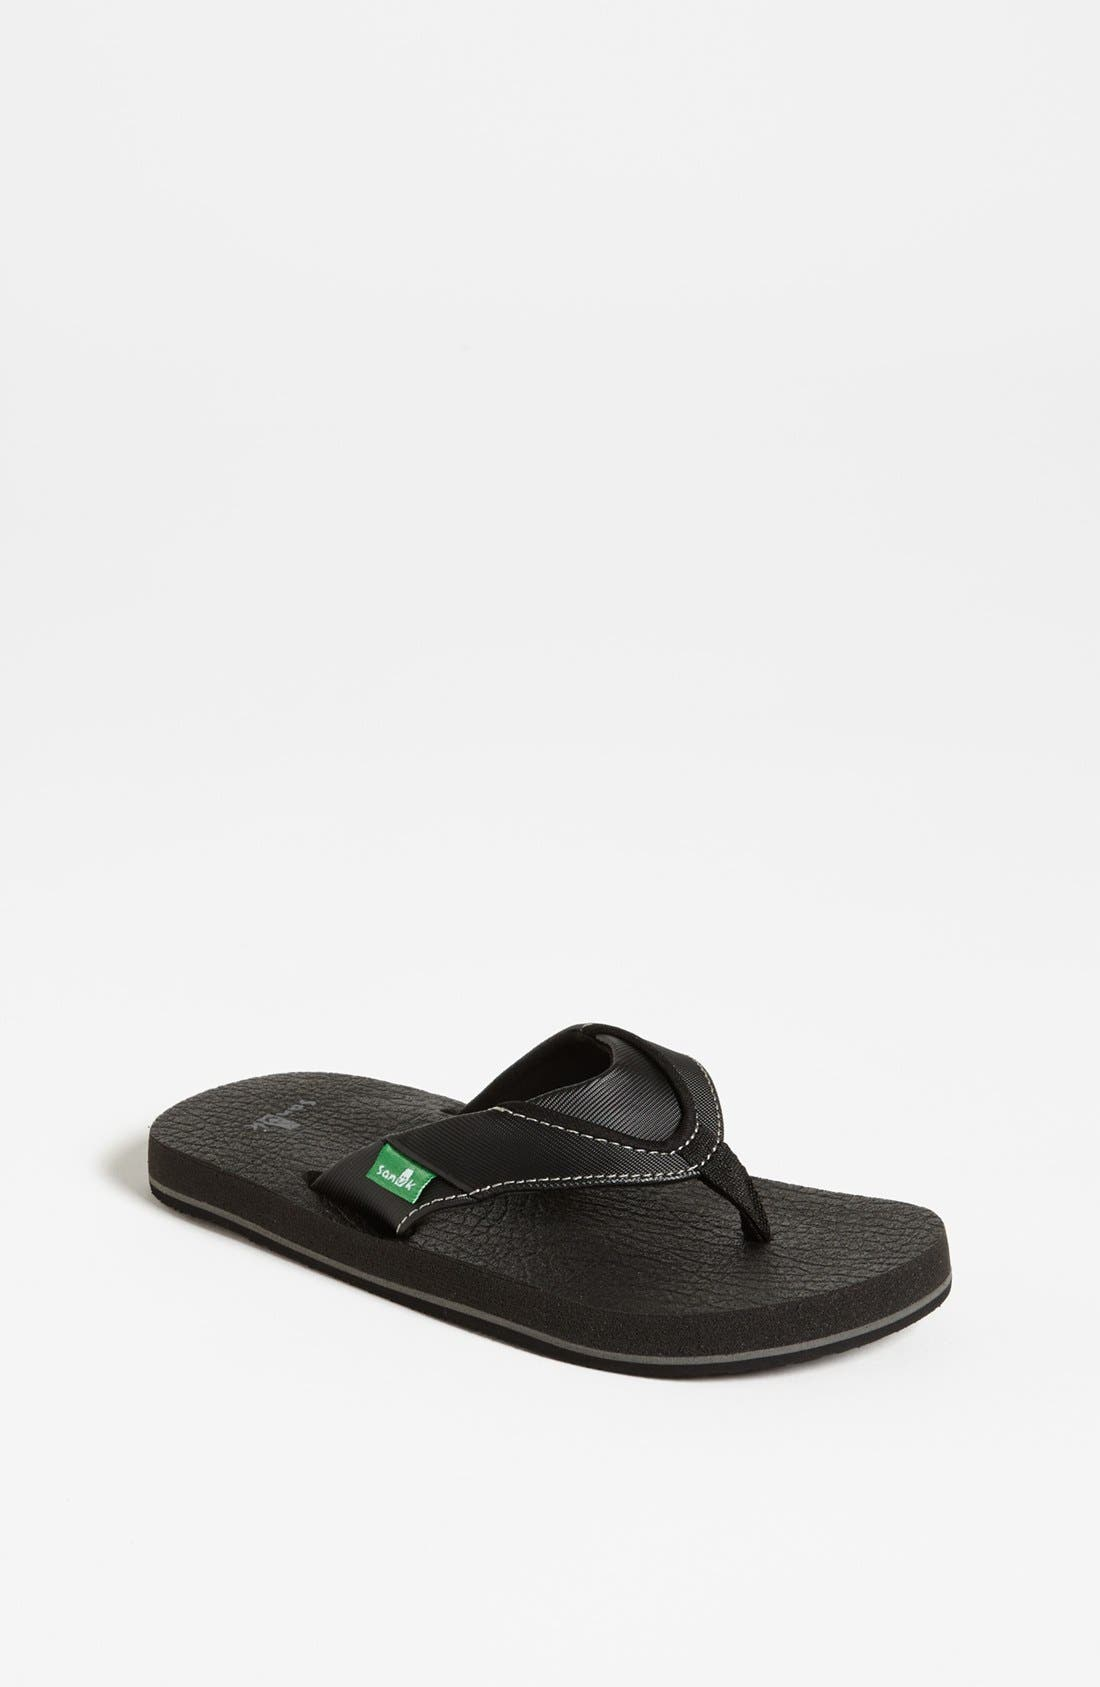 'Root Beer' Sandal,                         Main,                         color, BLACK